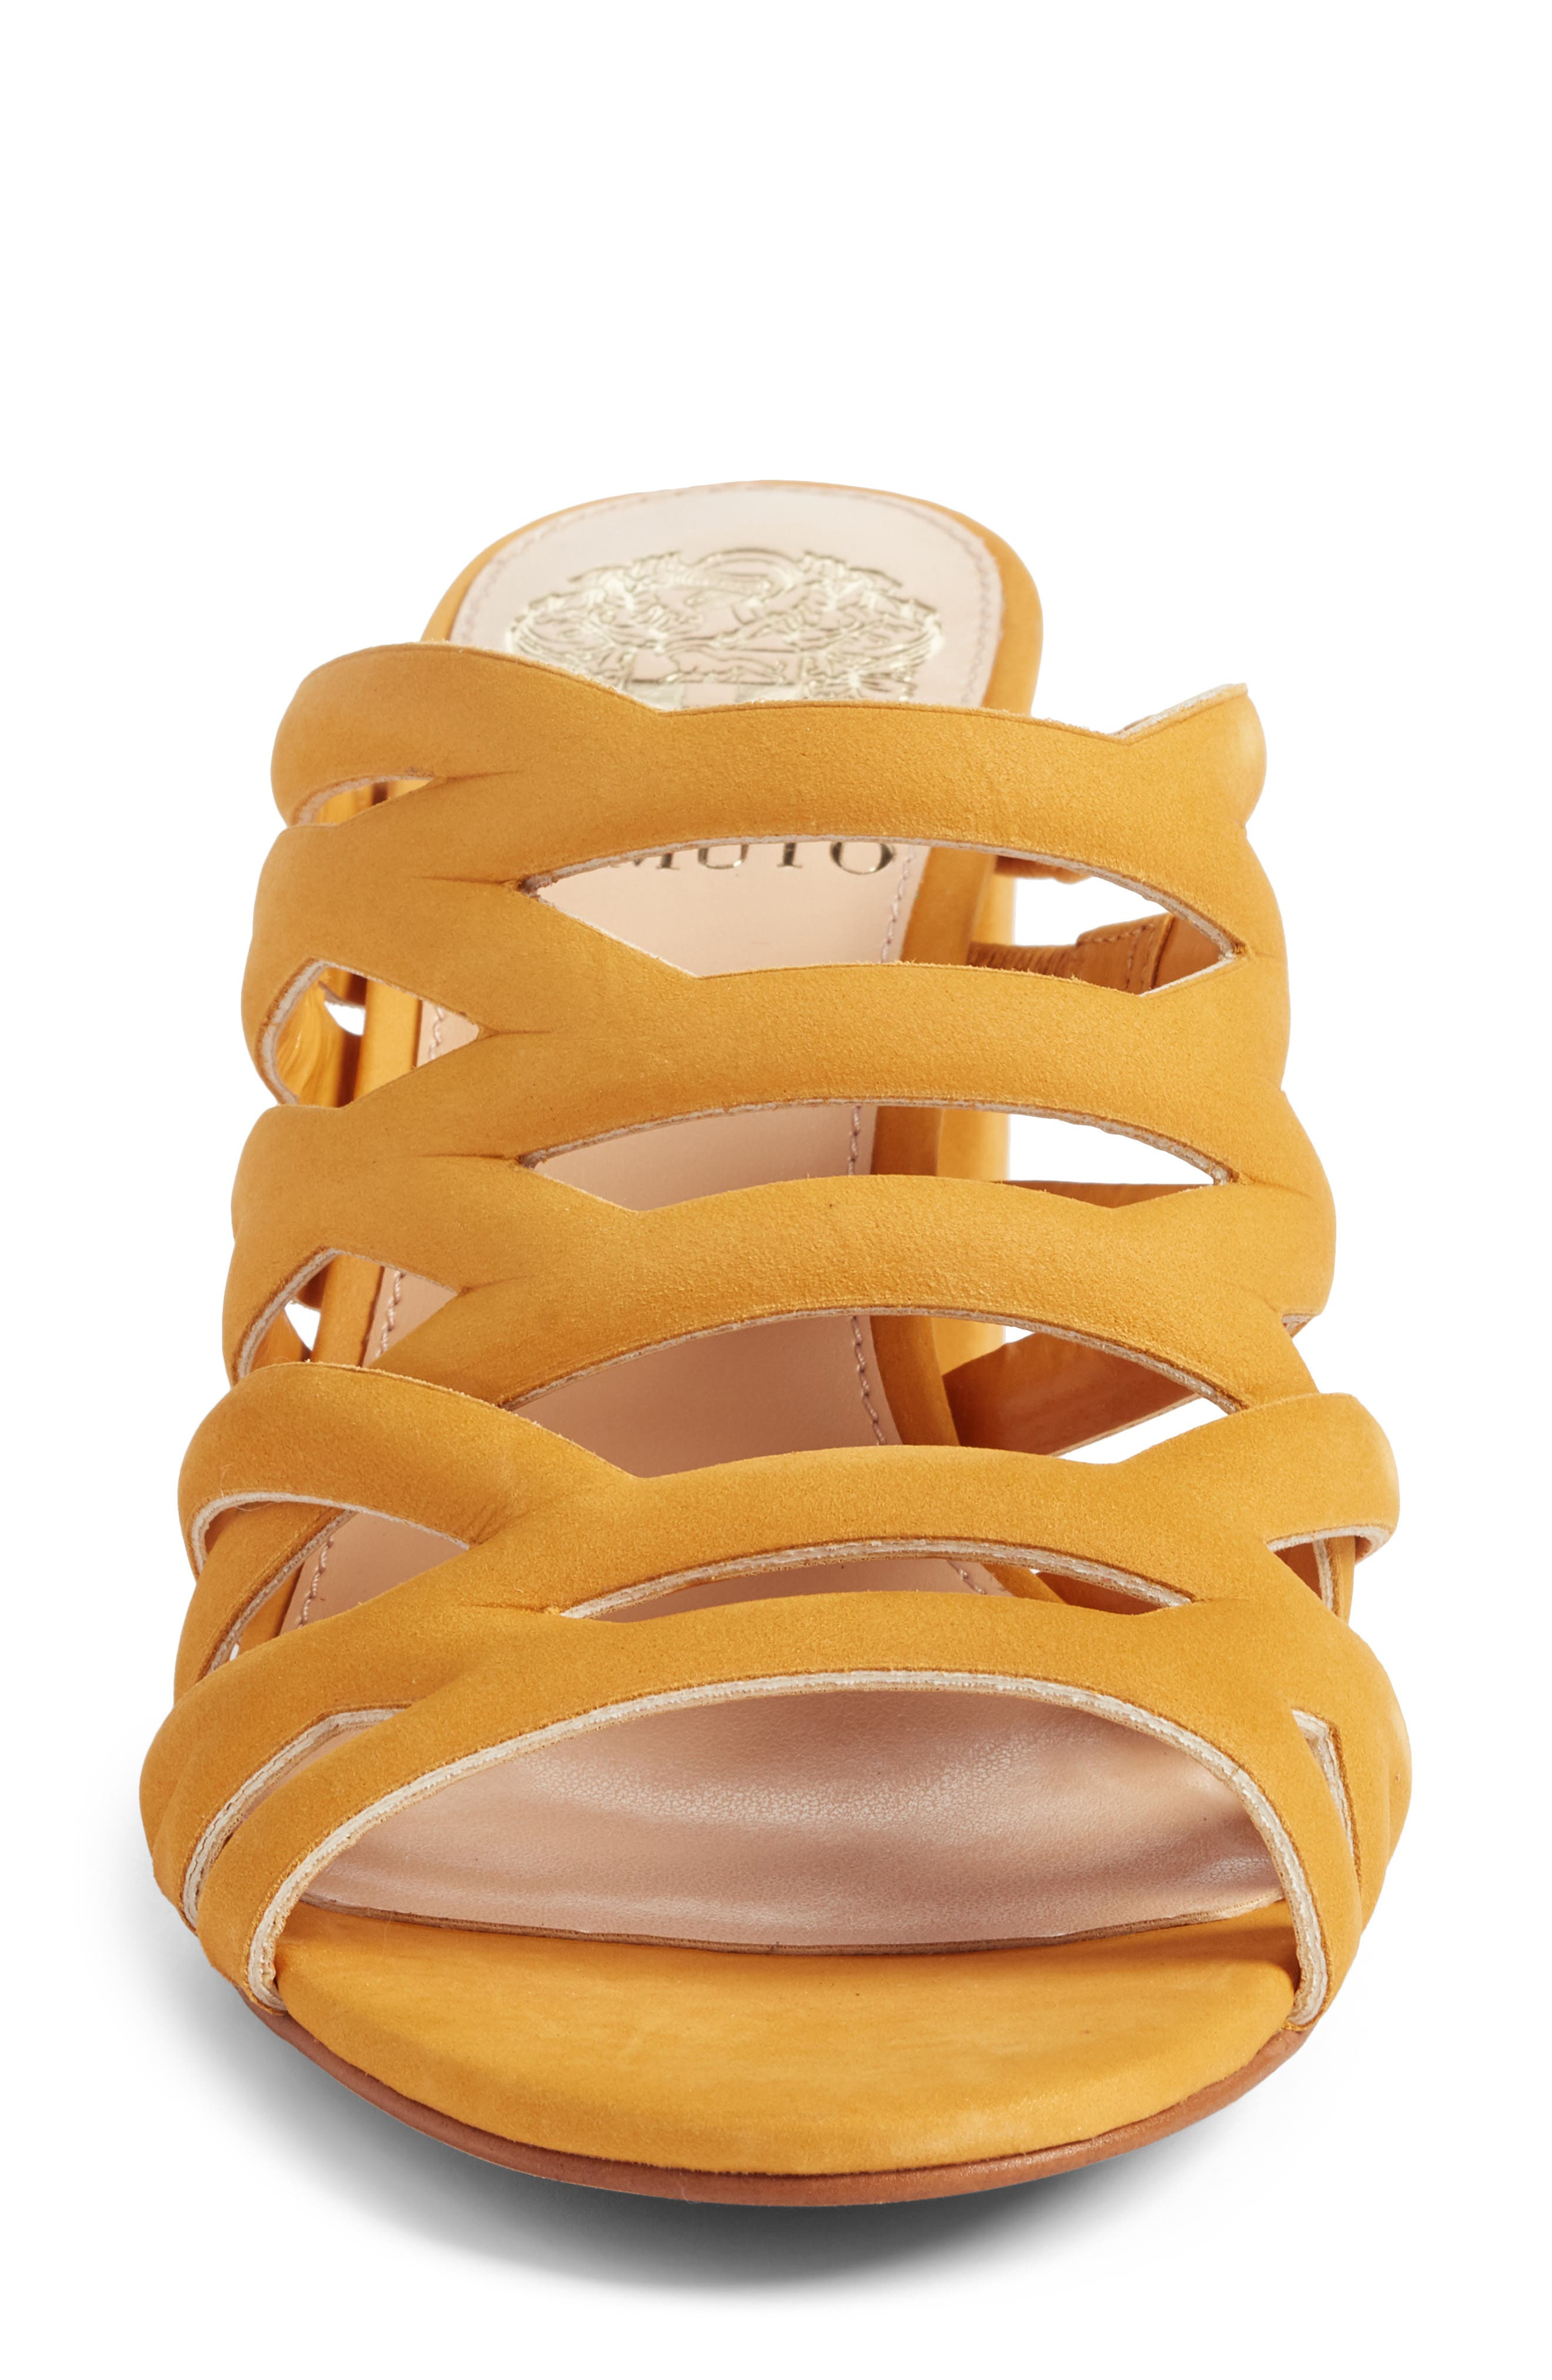 Raveana Cage Mule,                             Alternate thumbnail 4, color,                             MUSTARD YELLOW LEATHER